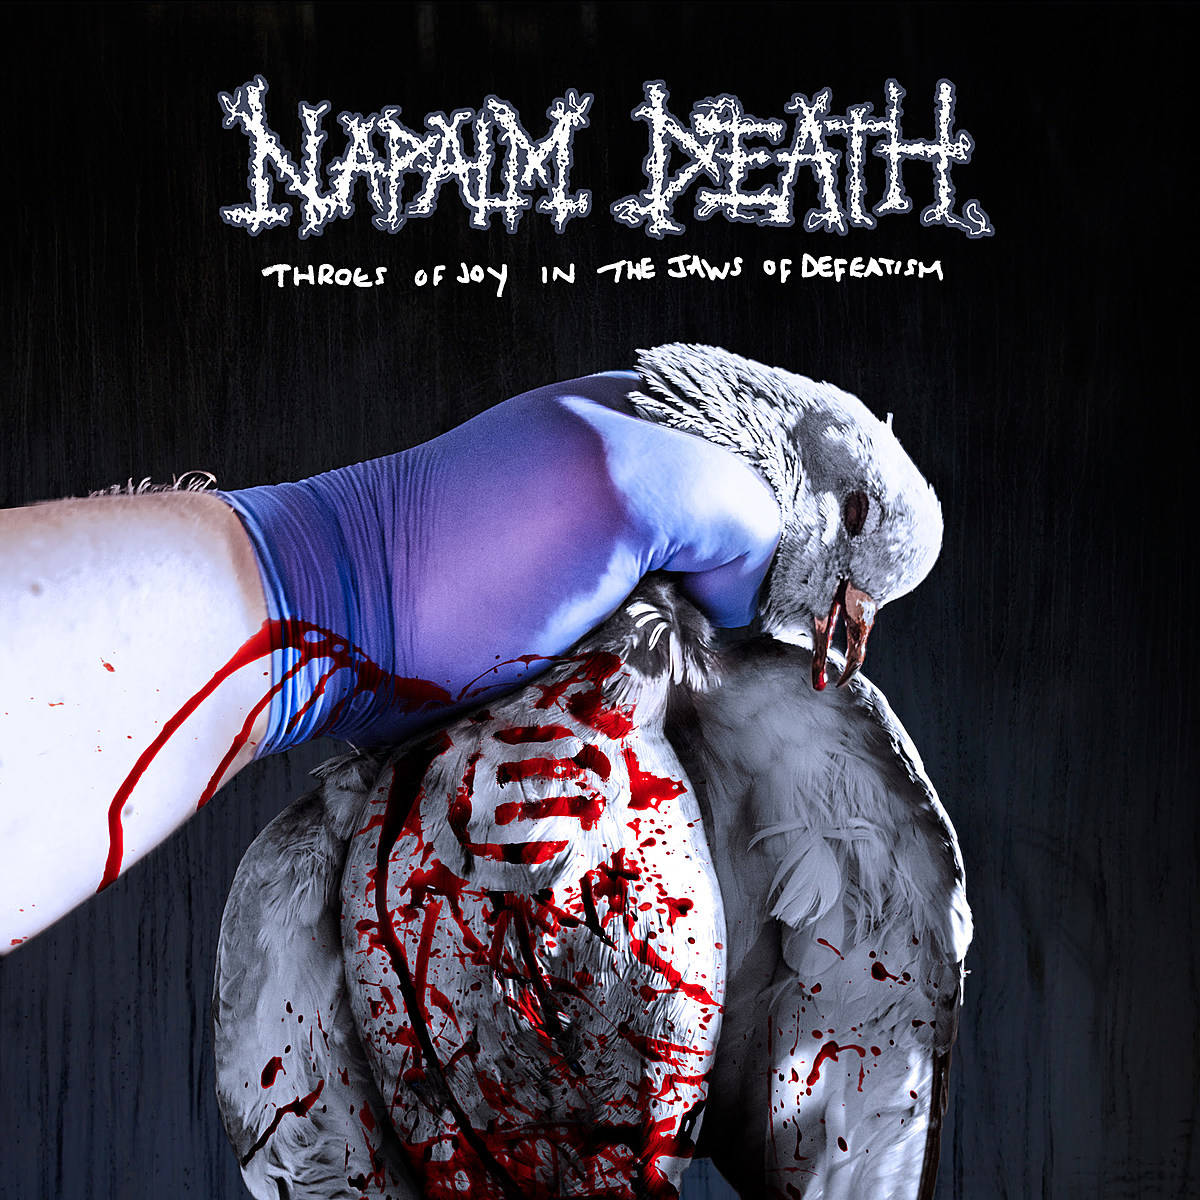 Napalm Death announce first album in 5 years, 'Throes of Joy in the Jaws of Defeatism'